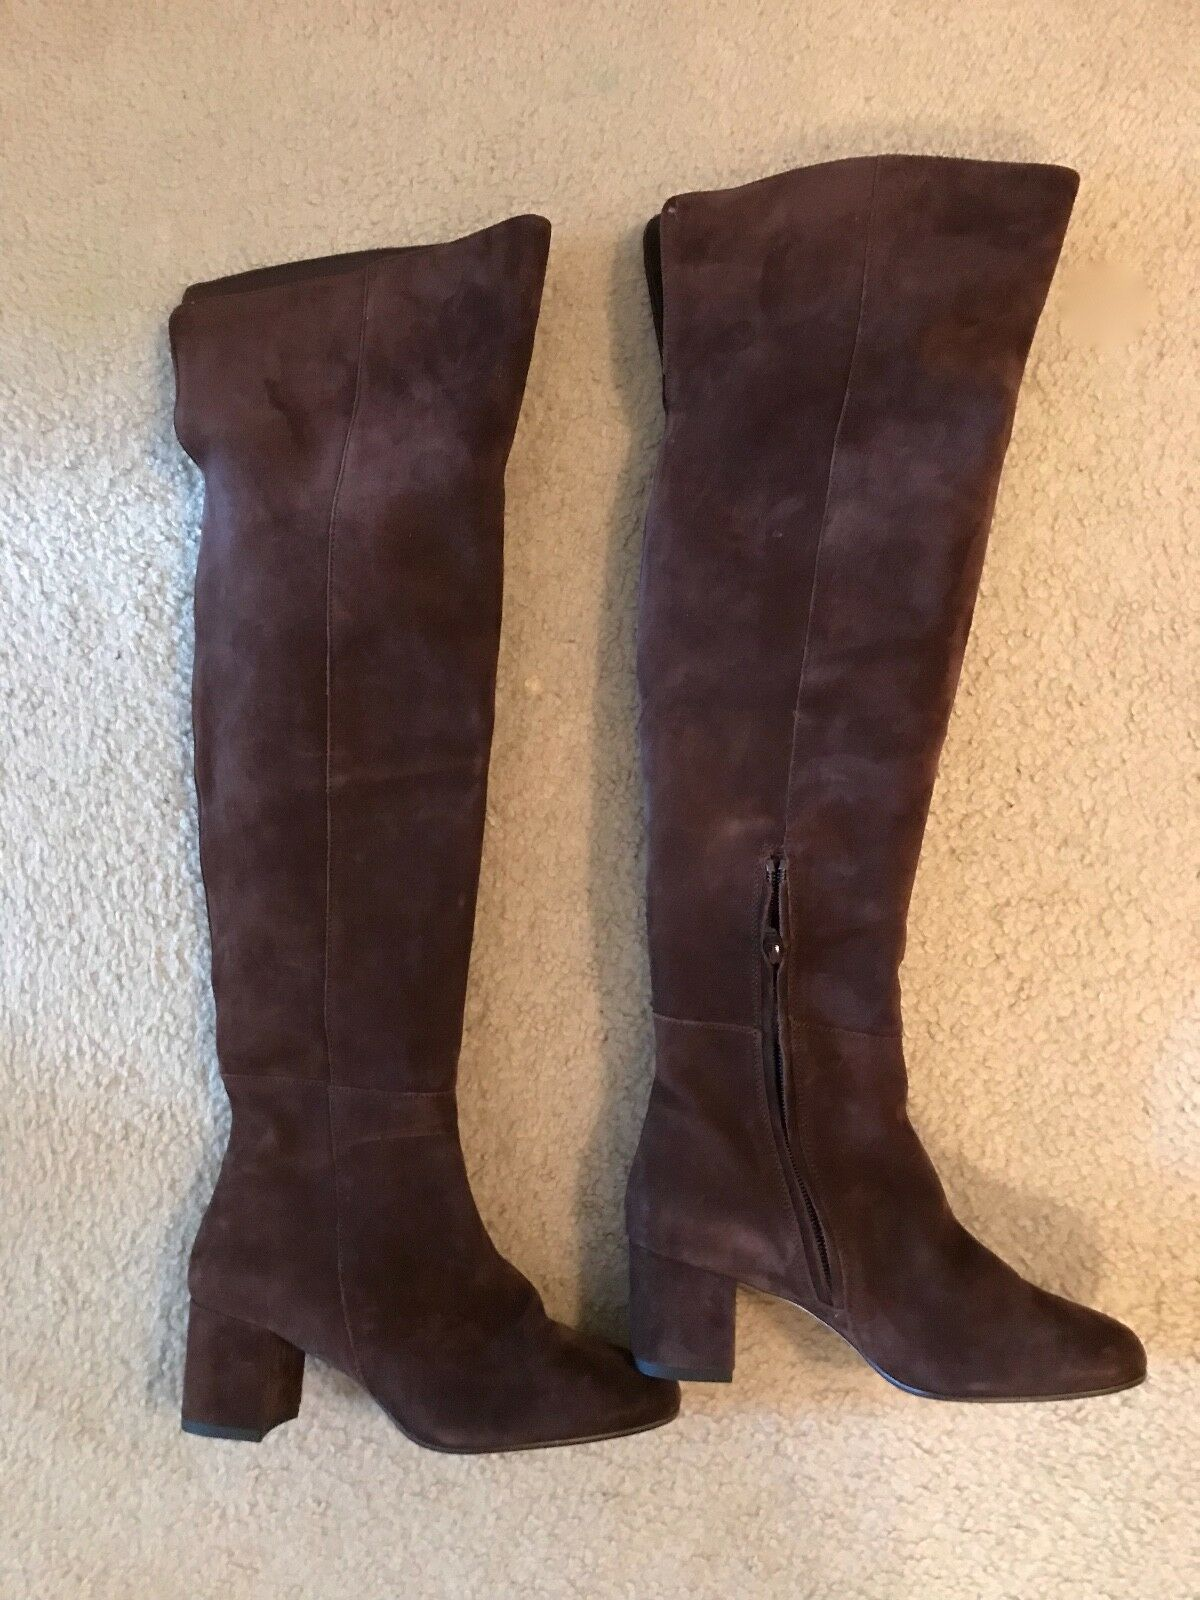 J.CREW SUEDE OVER-THE-KNEE BOOTS SIZE 5,5M DEEP MAPLE F8009